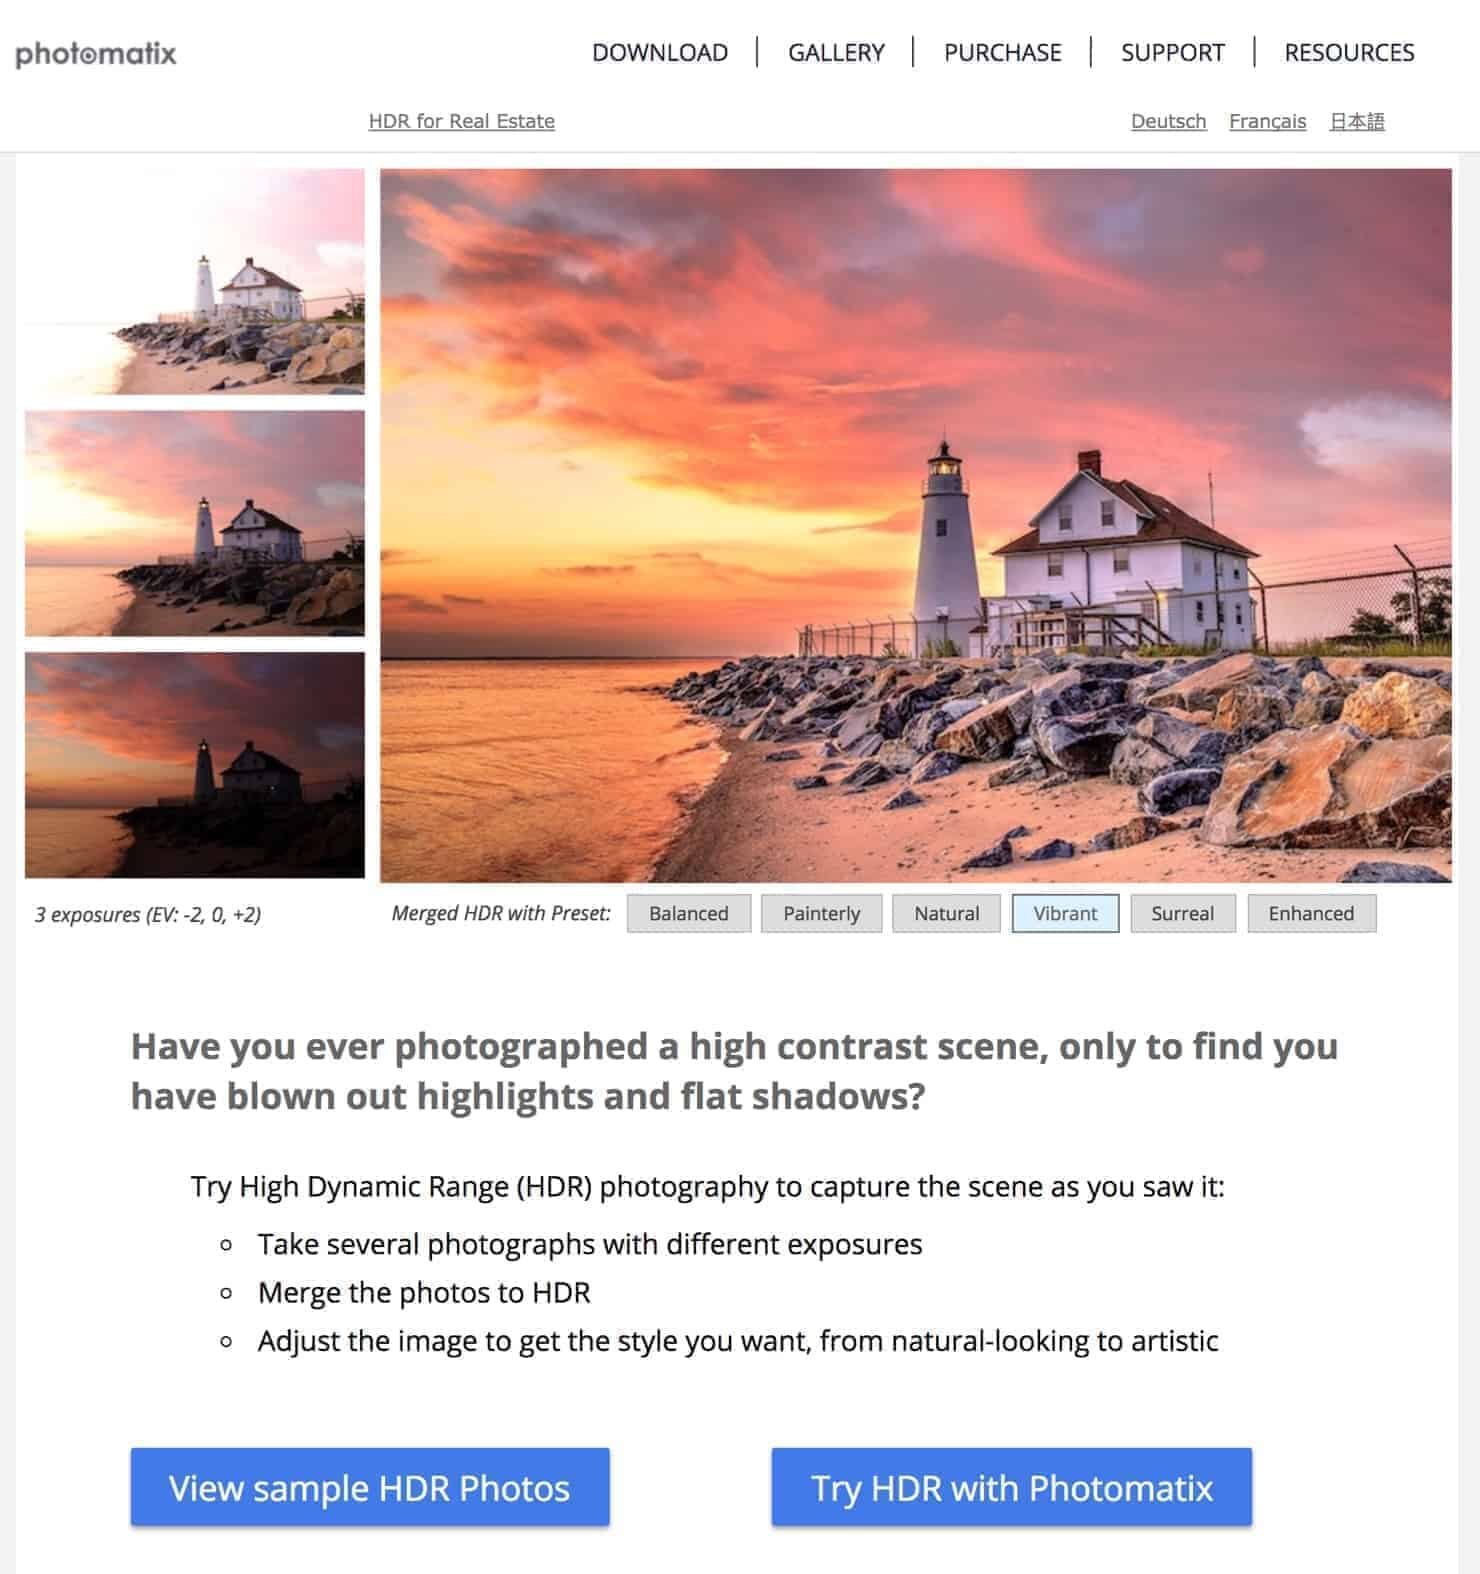 PhotoMatix Pro Best HDR Software